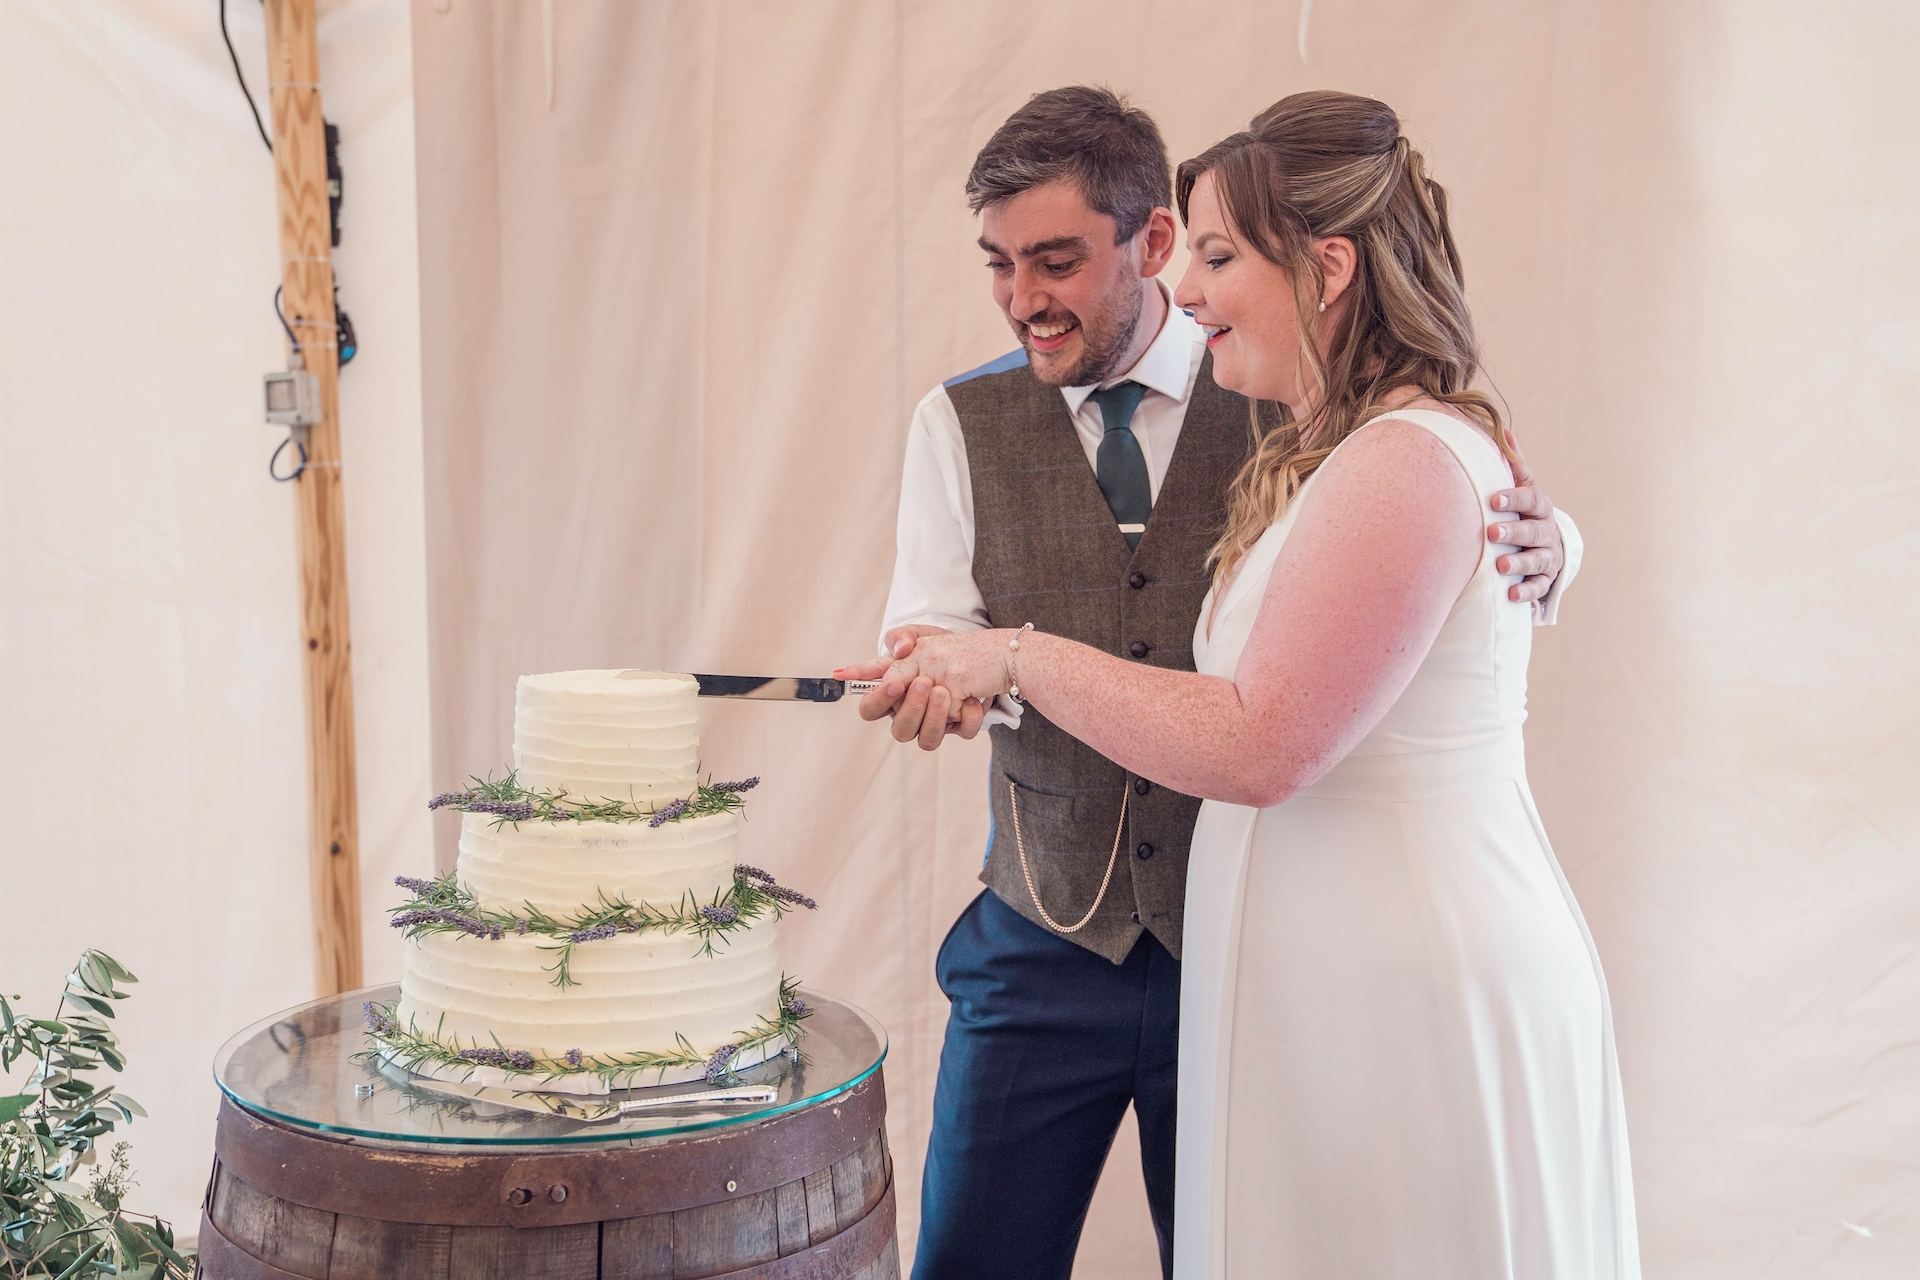 PapaKåta couple Louise & Alex's Sperry Wedding at Elford Hall Garden, Staffordshire captured by Jessica Raphael Photography- Cutting the cake